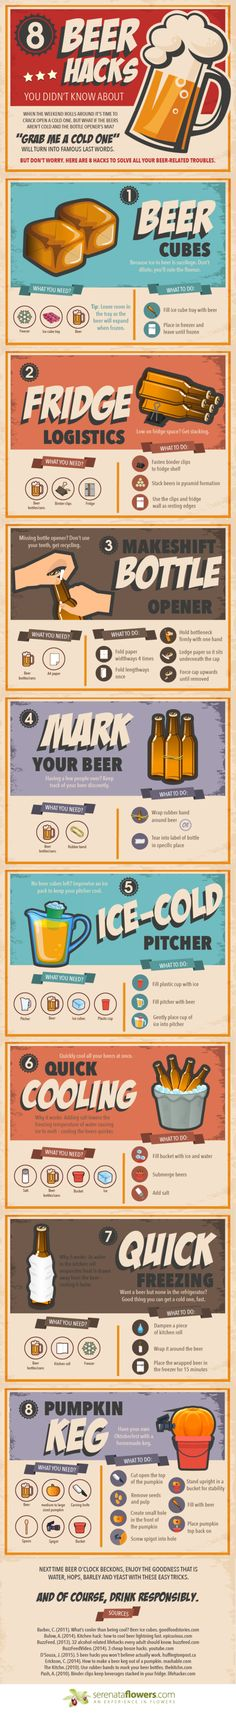 The Beer Hacks You Want And Need